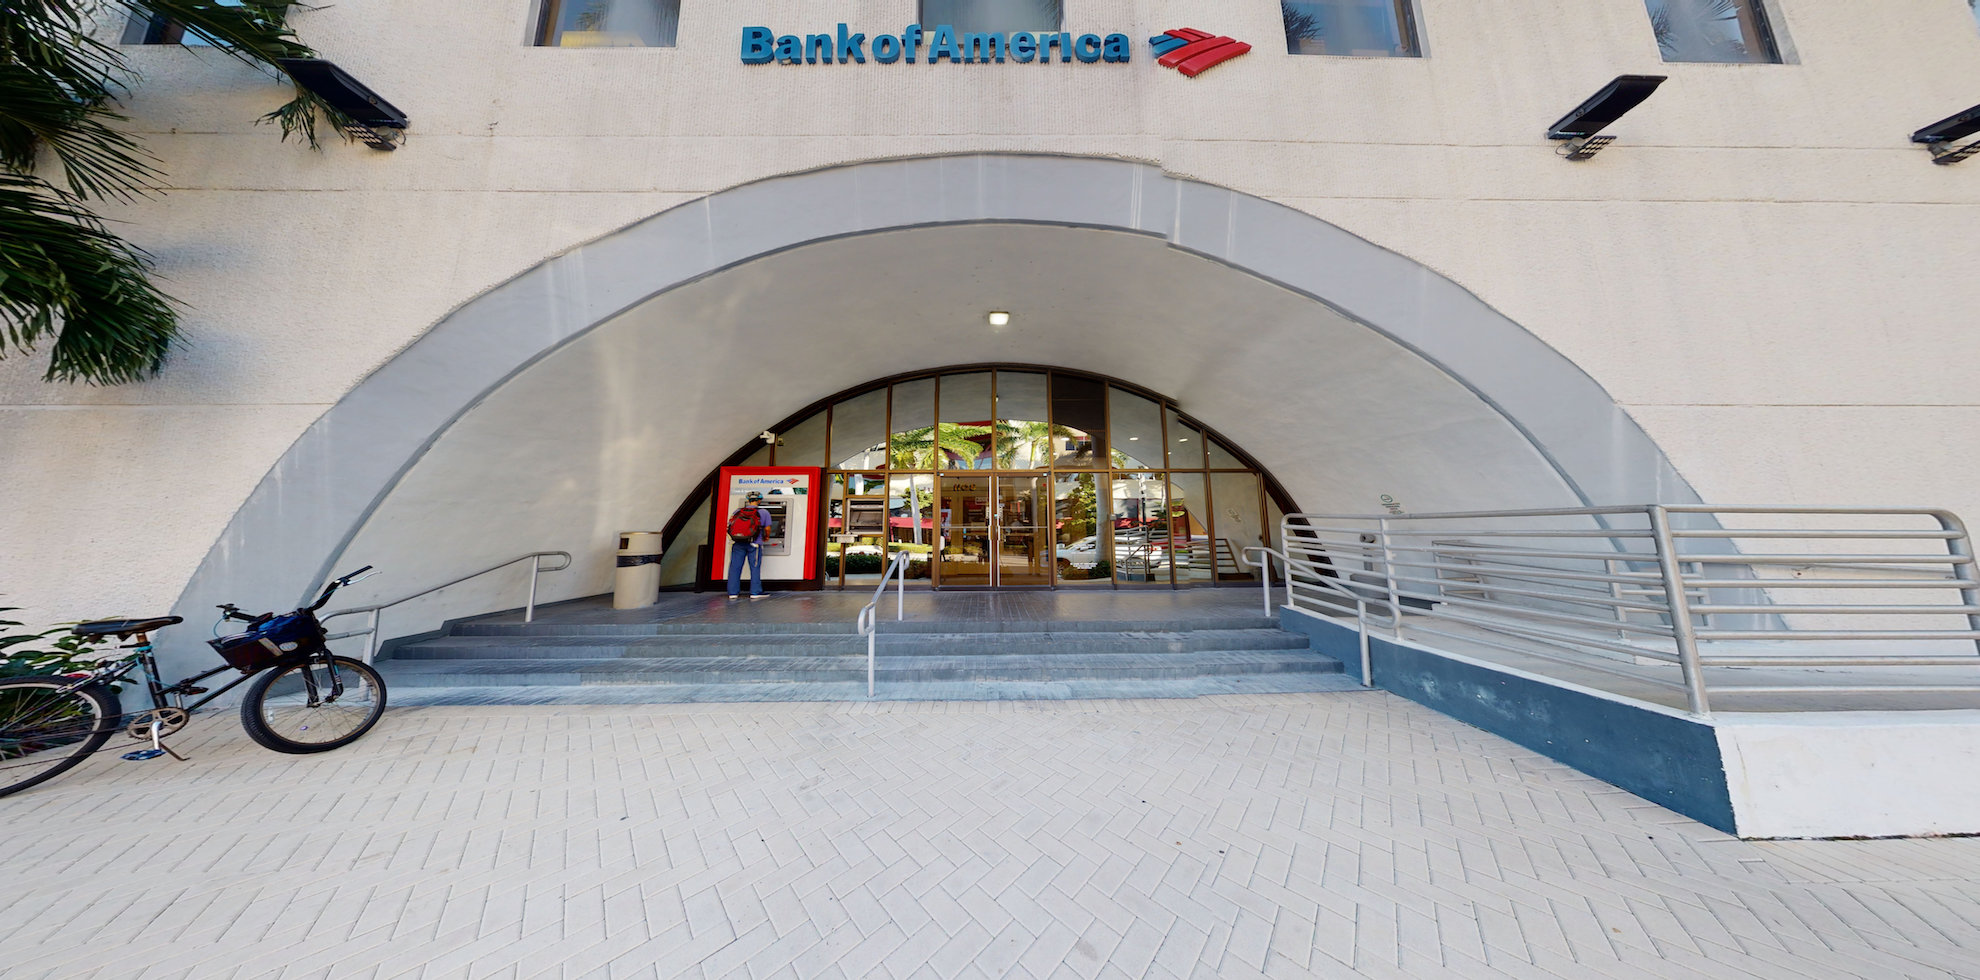 Bank of America financial center with drive-thru ATM | 1108 Kane Concourse, Bay Harbor Islands, FL 33154